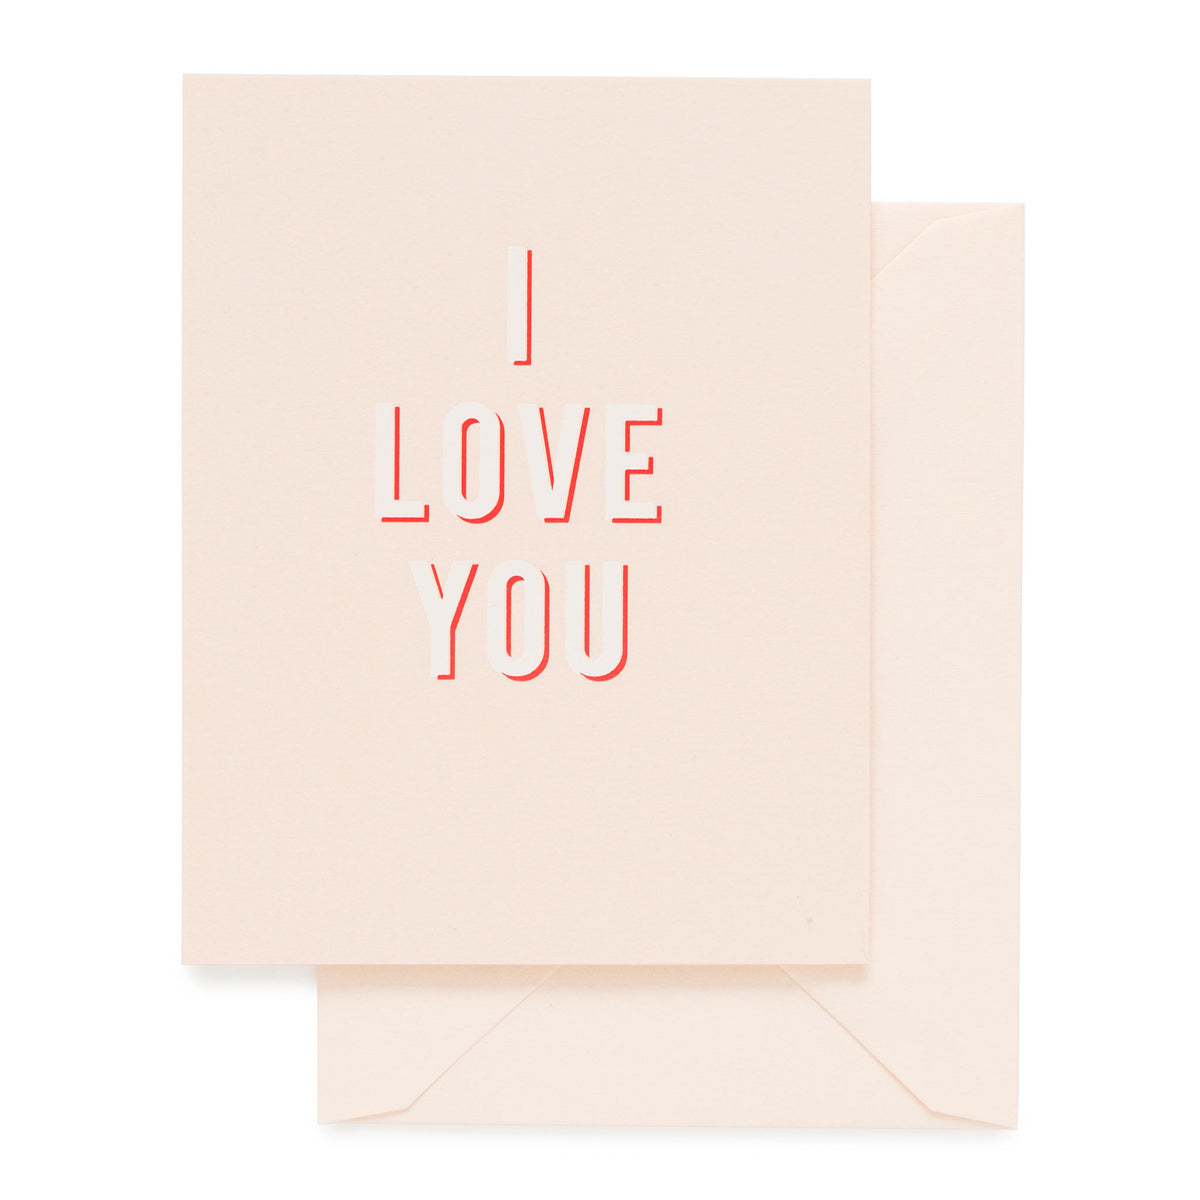 Pale pink card printed with red and white ink I LOVE YOU